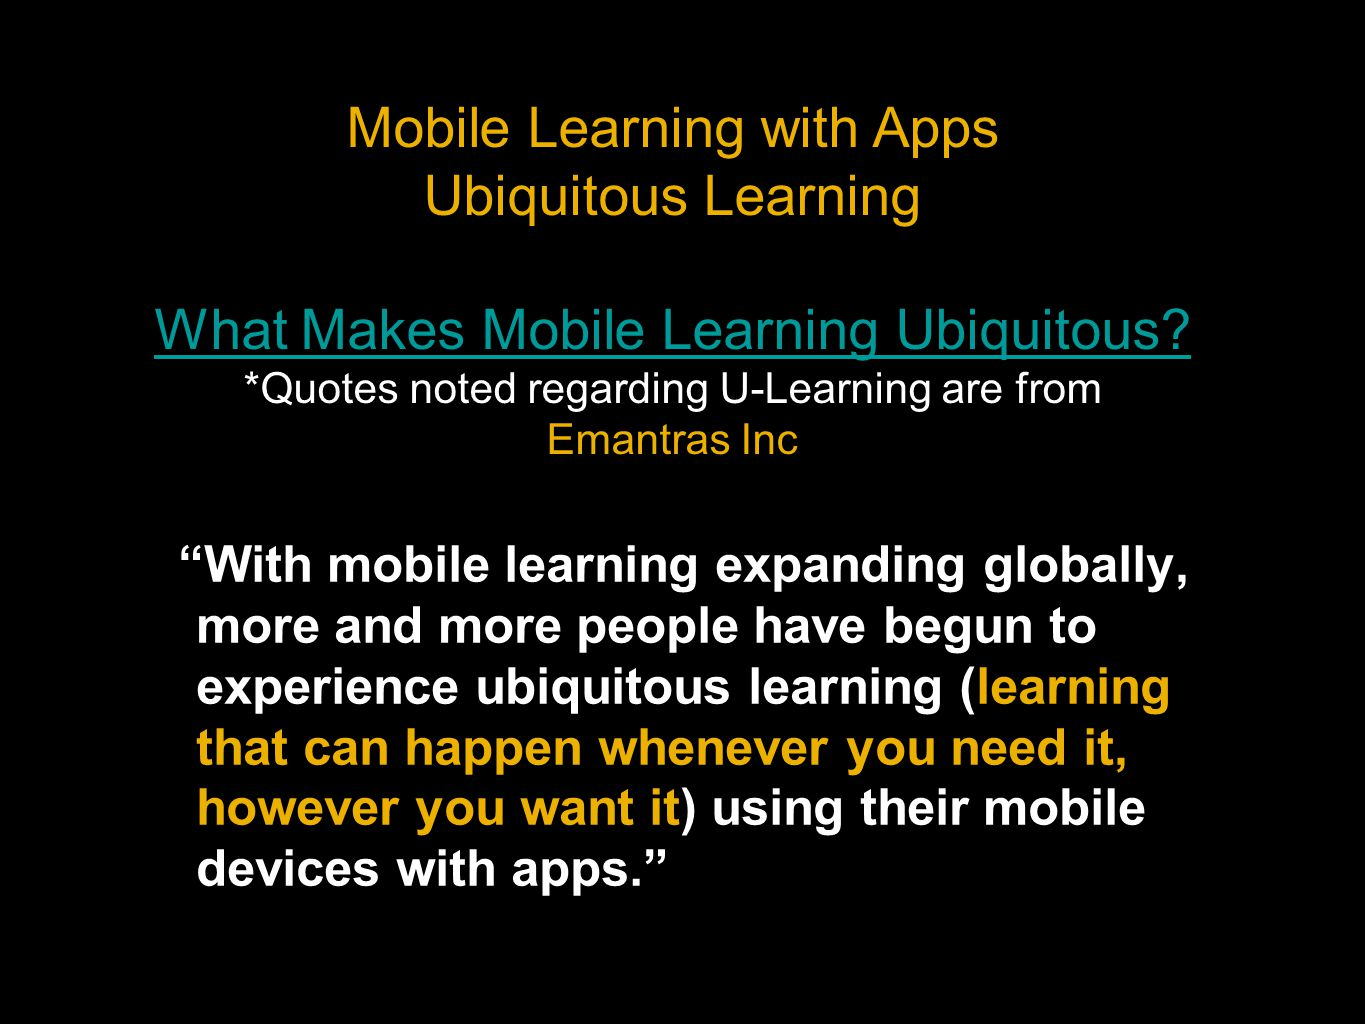 With mobile learning expanding globally, more and more people have begun to experience ubiquitous learning (learning that can happen whenever you need it, however you want it) using their mobile devices with apps.